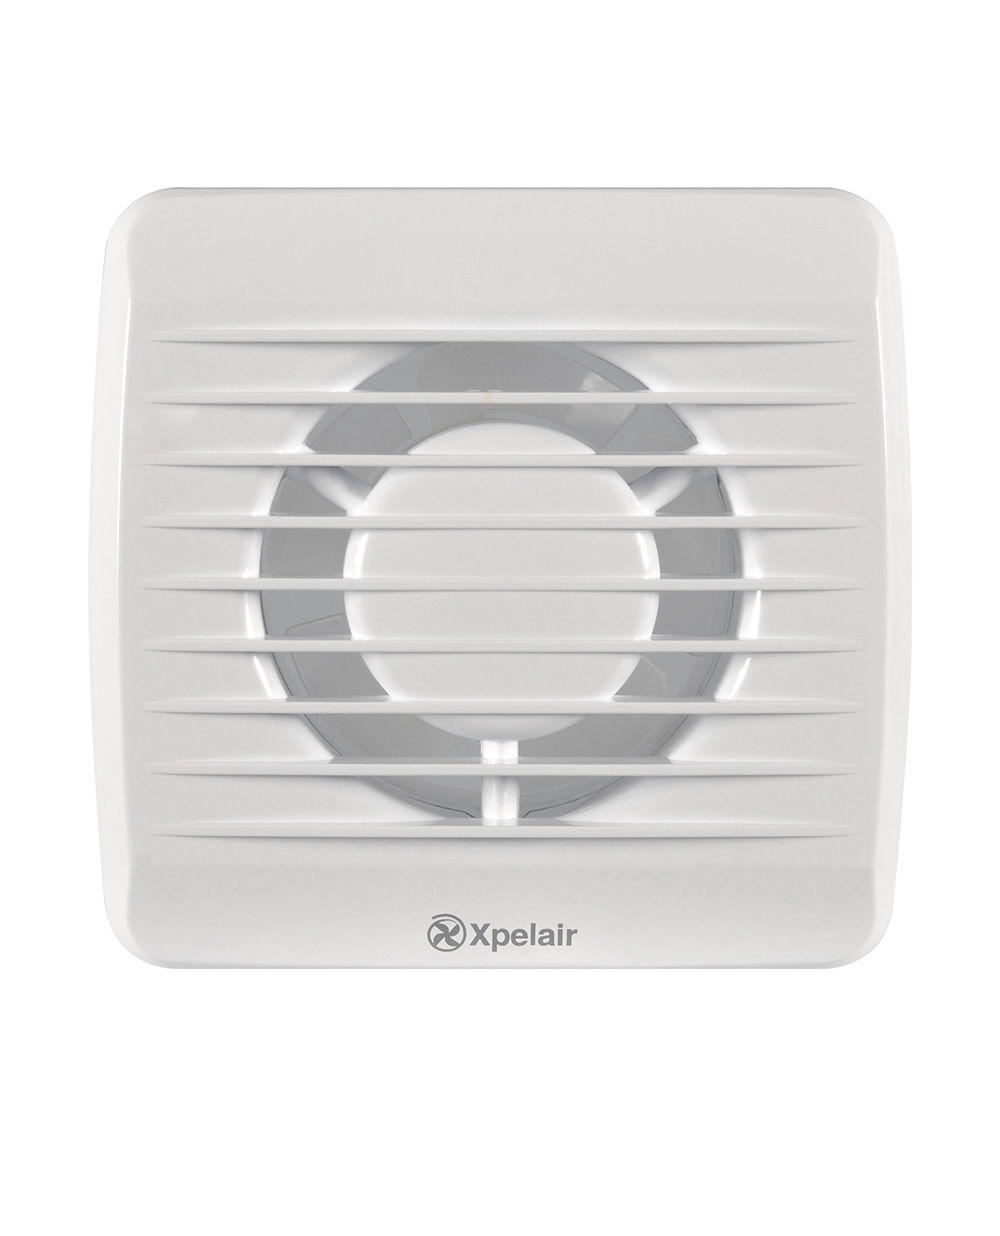 xpelair 4 u0026quot   100mm  timed extractor fan - vx100t